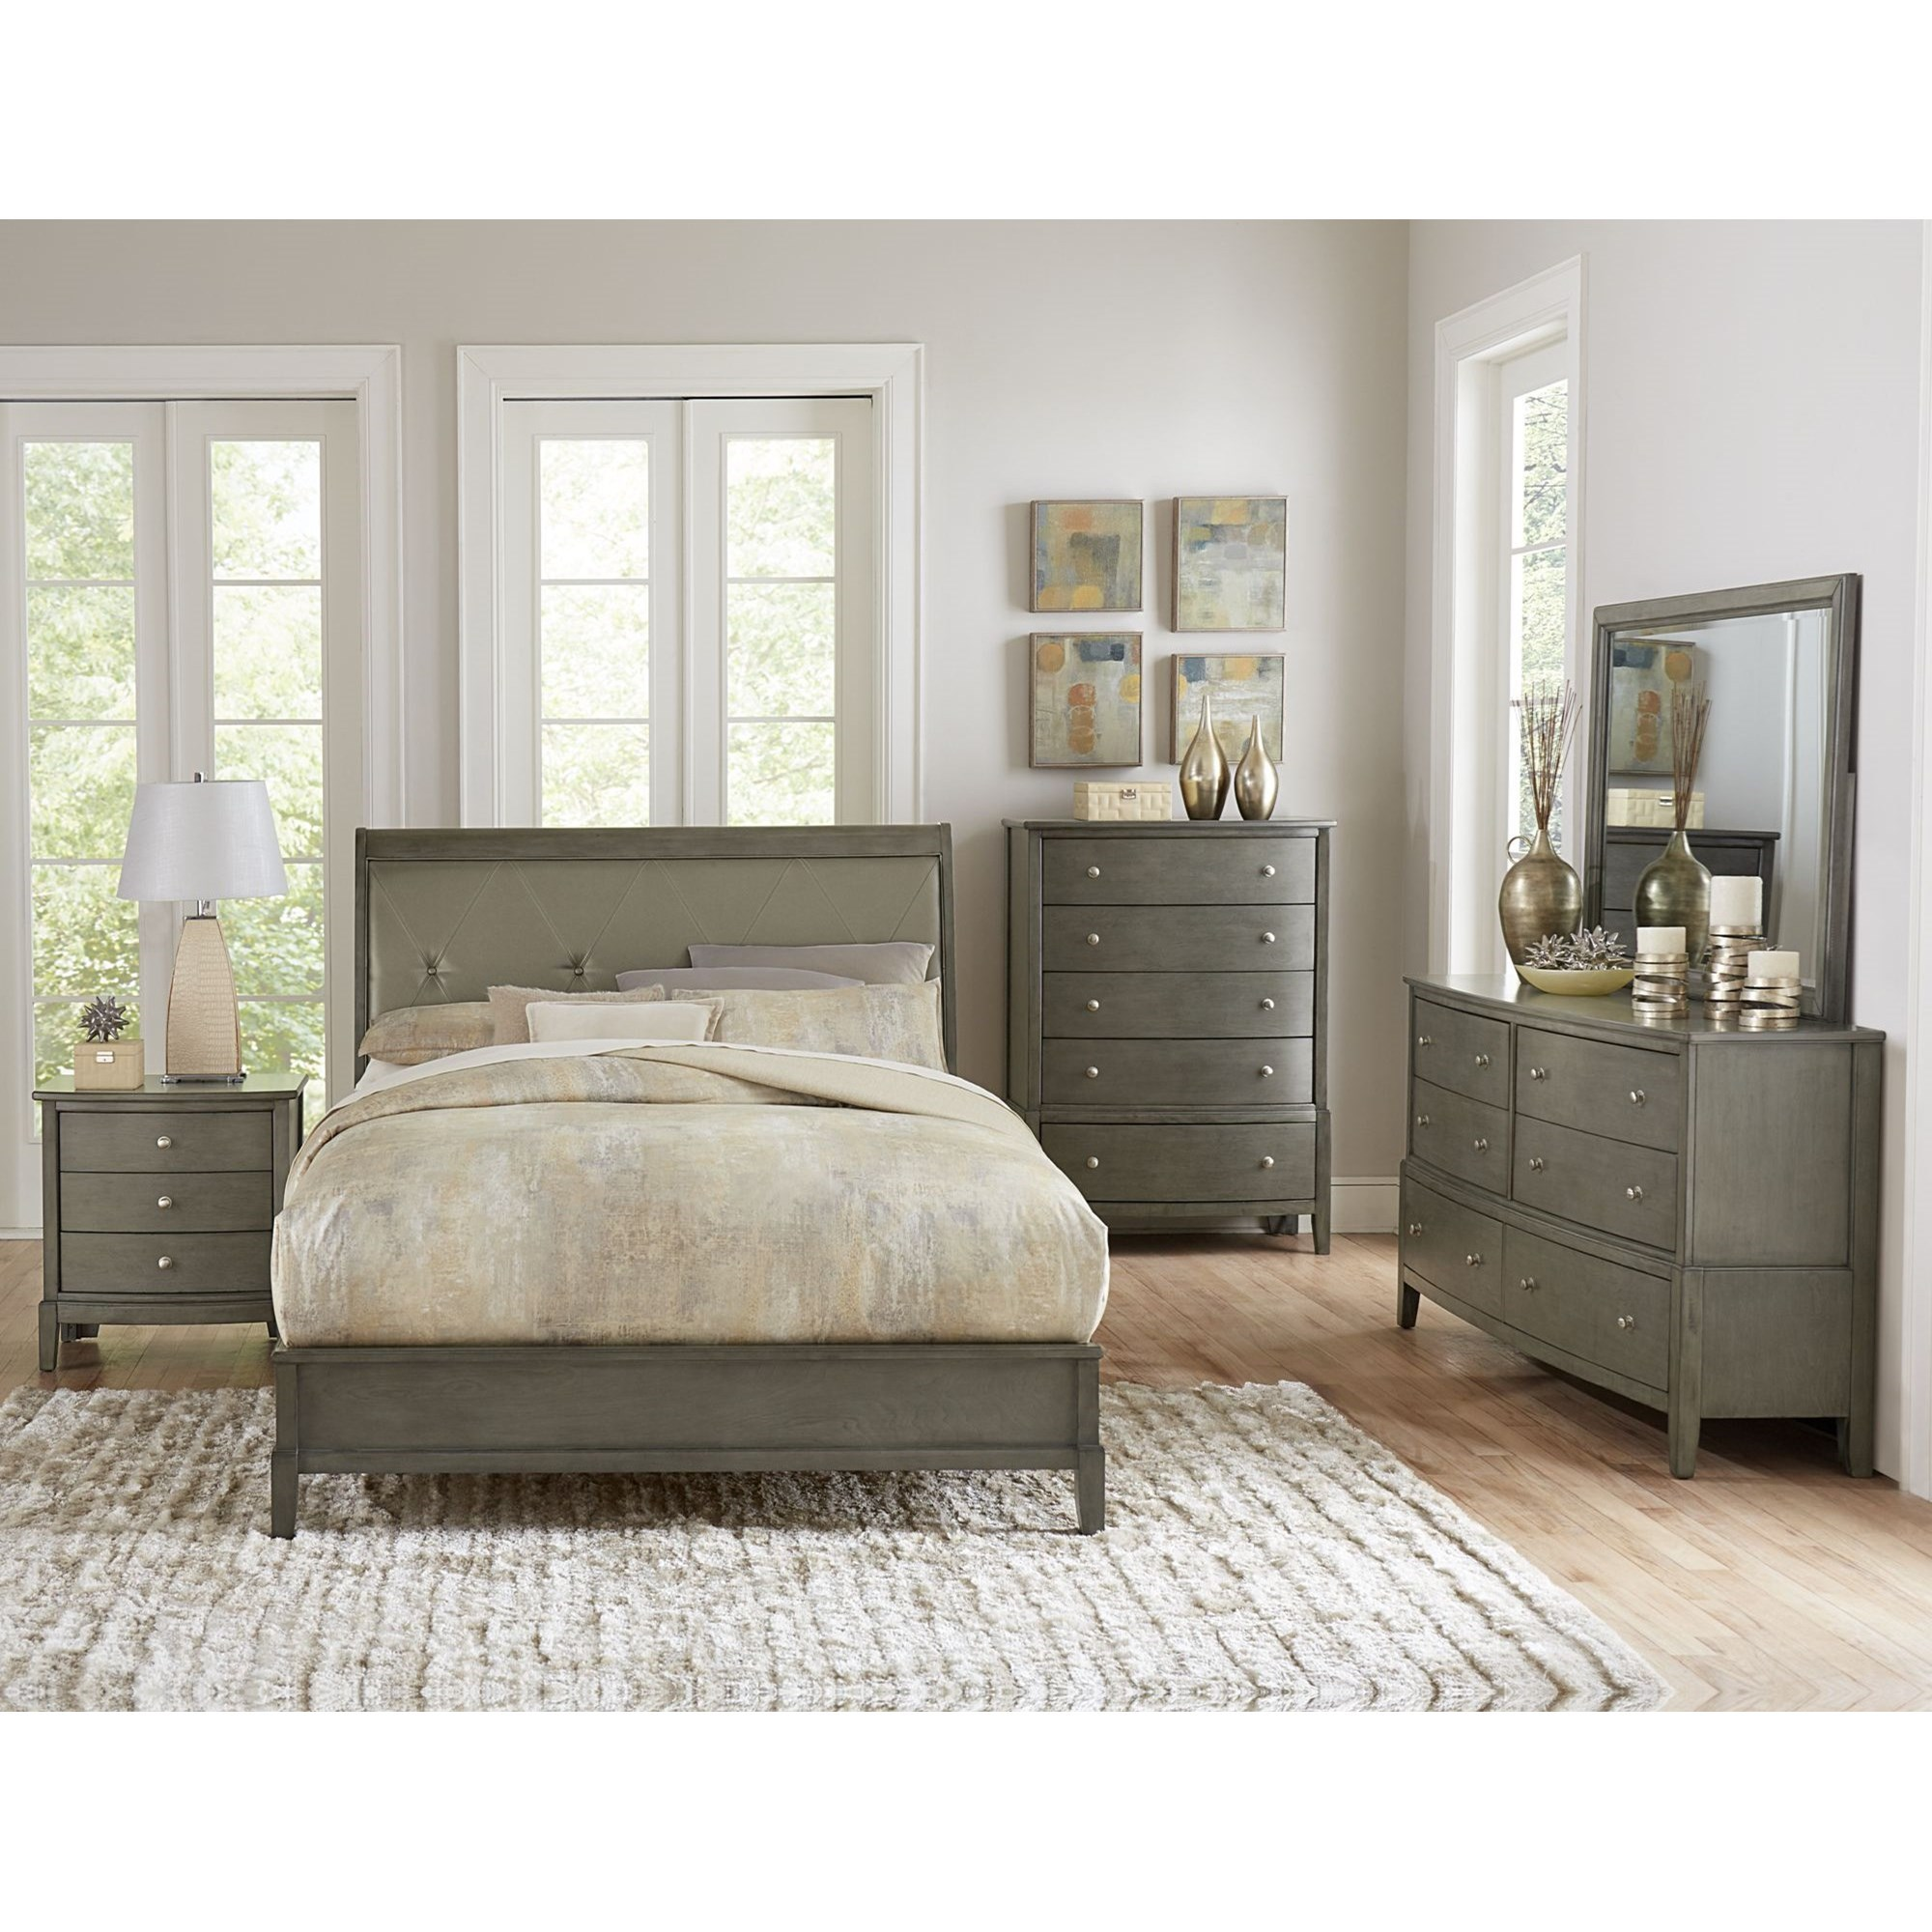 Cotterill King Bedroom Group by Homelegance at Lindy's Furniture Company